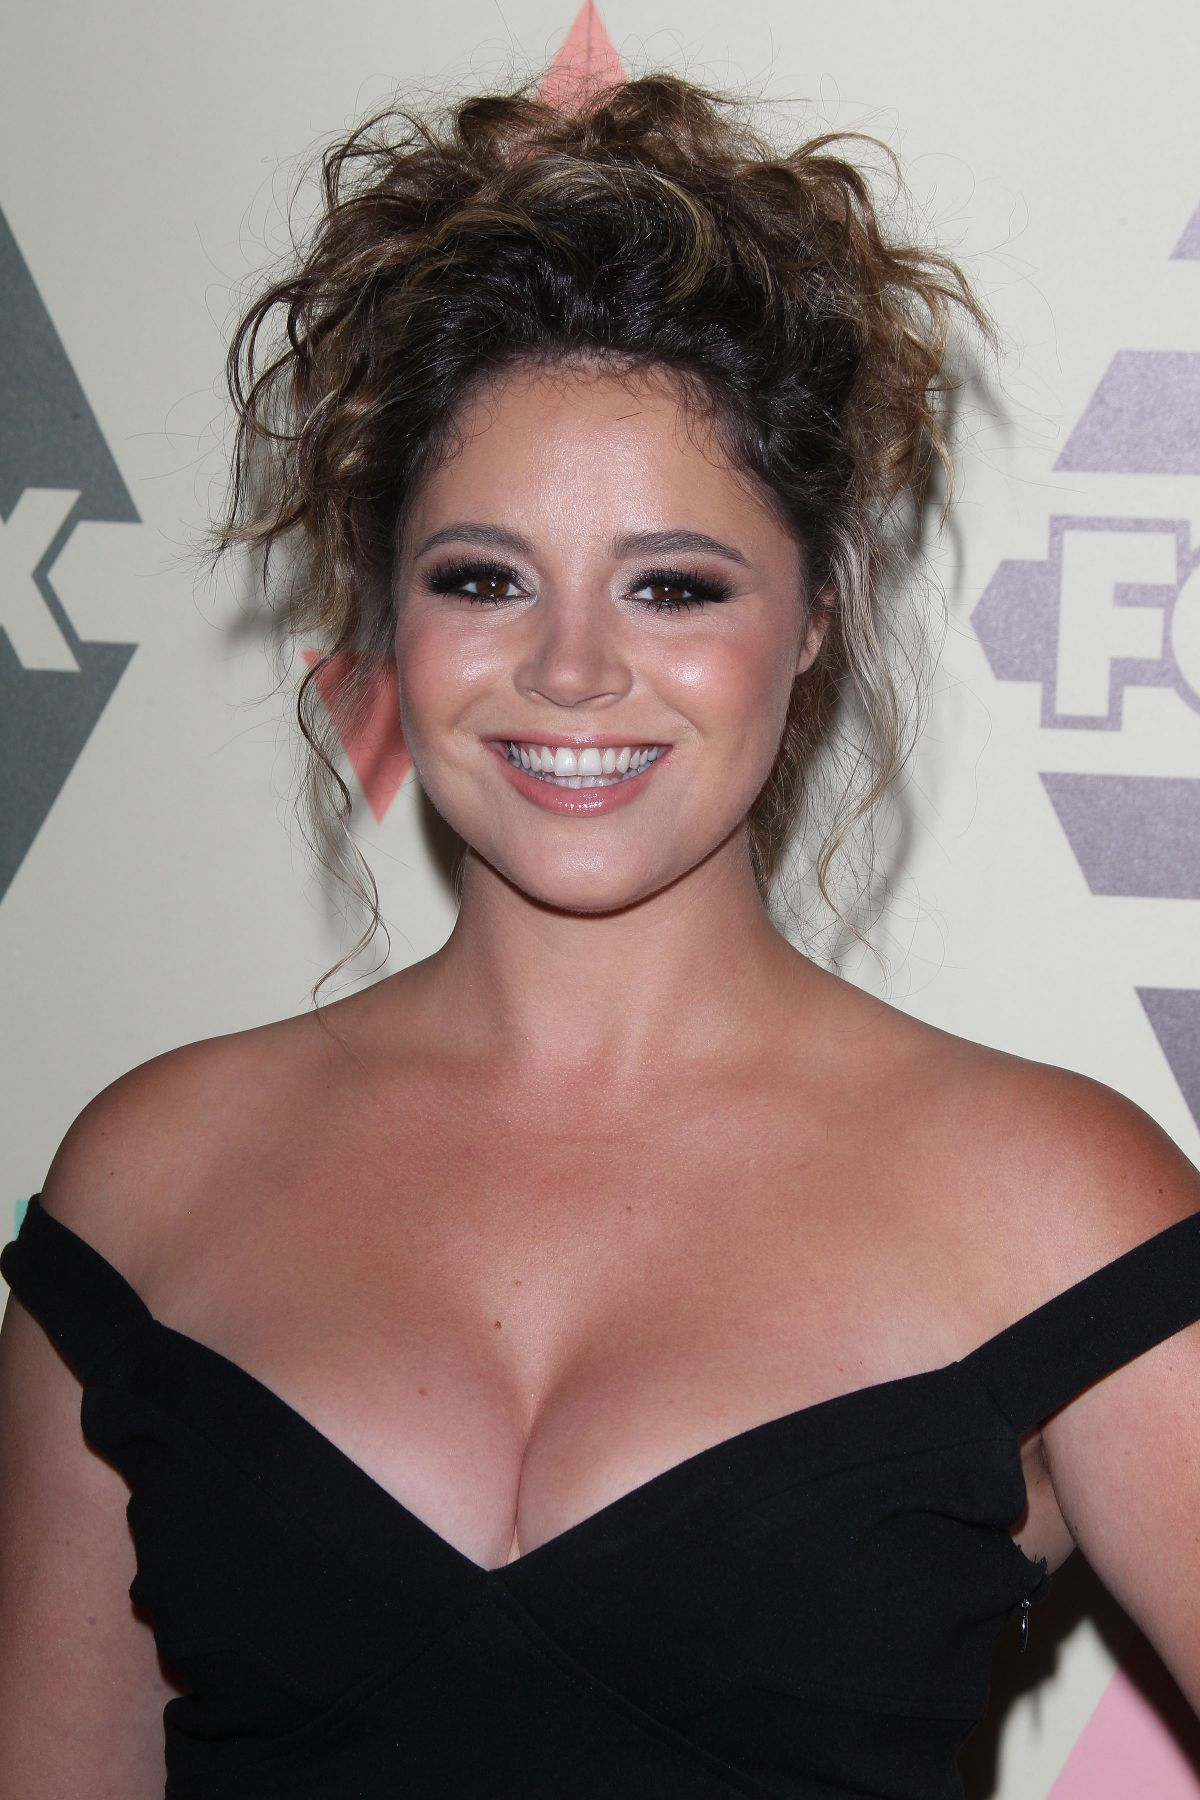 kether donohue singingkether donohue you're the worst, kether donohue singing, kether donohue instagram, kether donohue, kether donohue pitch perfect, kether donohue tumblr, kether donohue weight height, kether donohue this woman work, kether donohue the bay, kether donohue grease, kether donohue pitch perfect 2, kether donohue boyfriend, kether donohue measurements, kether donohue gif, kether donohue bikini